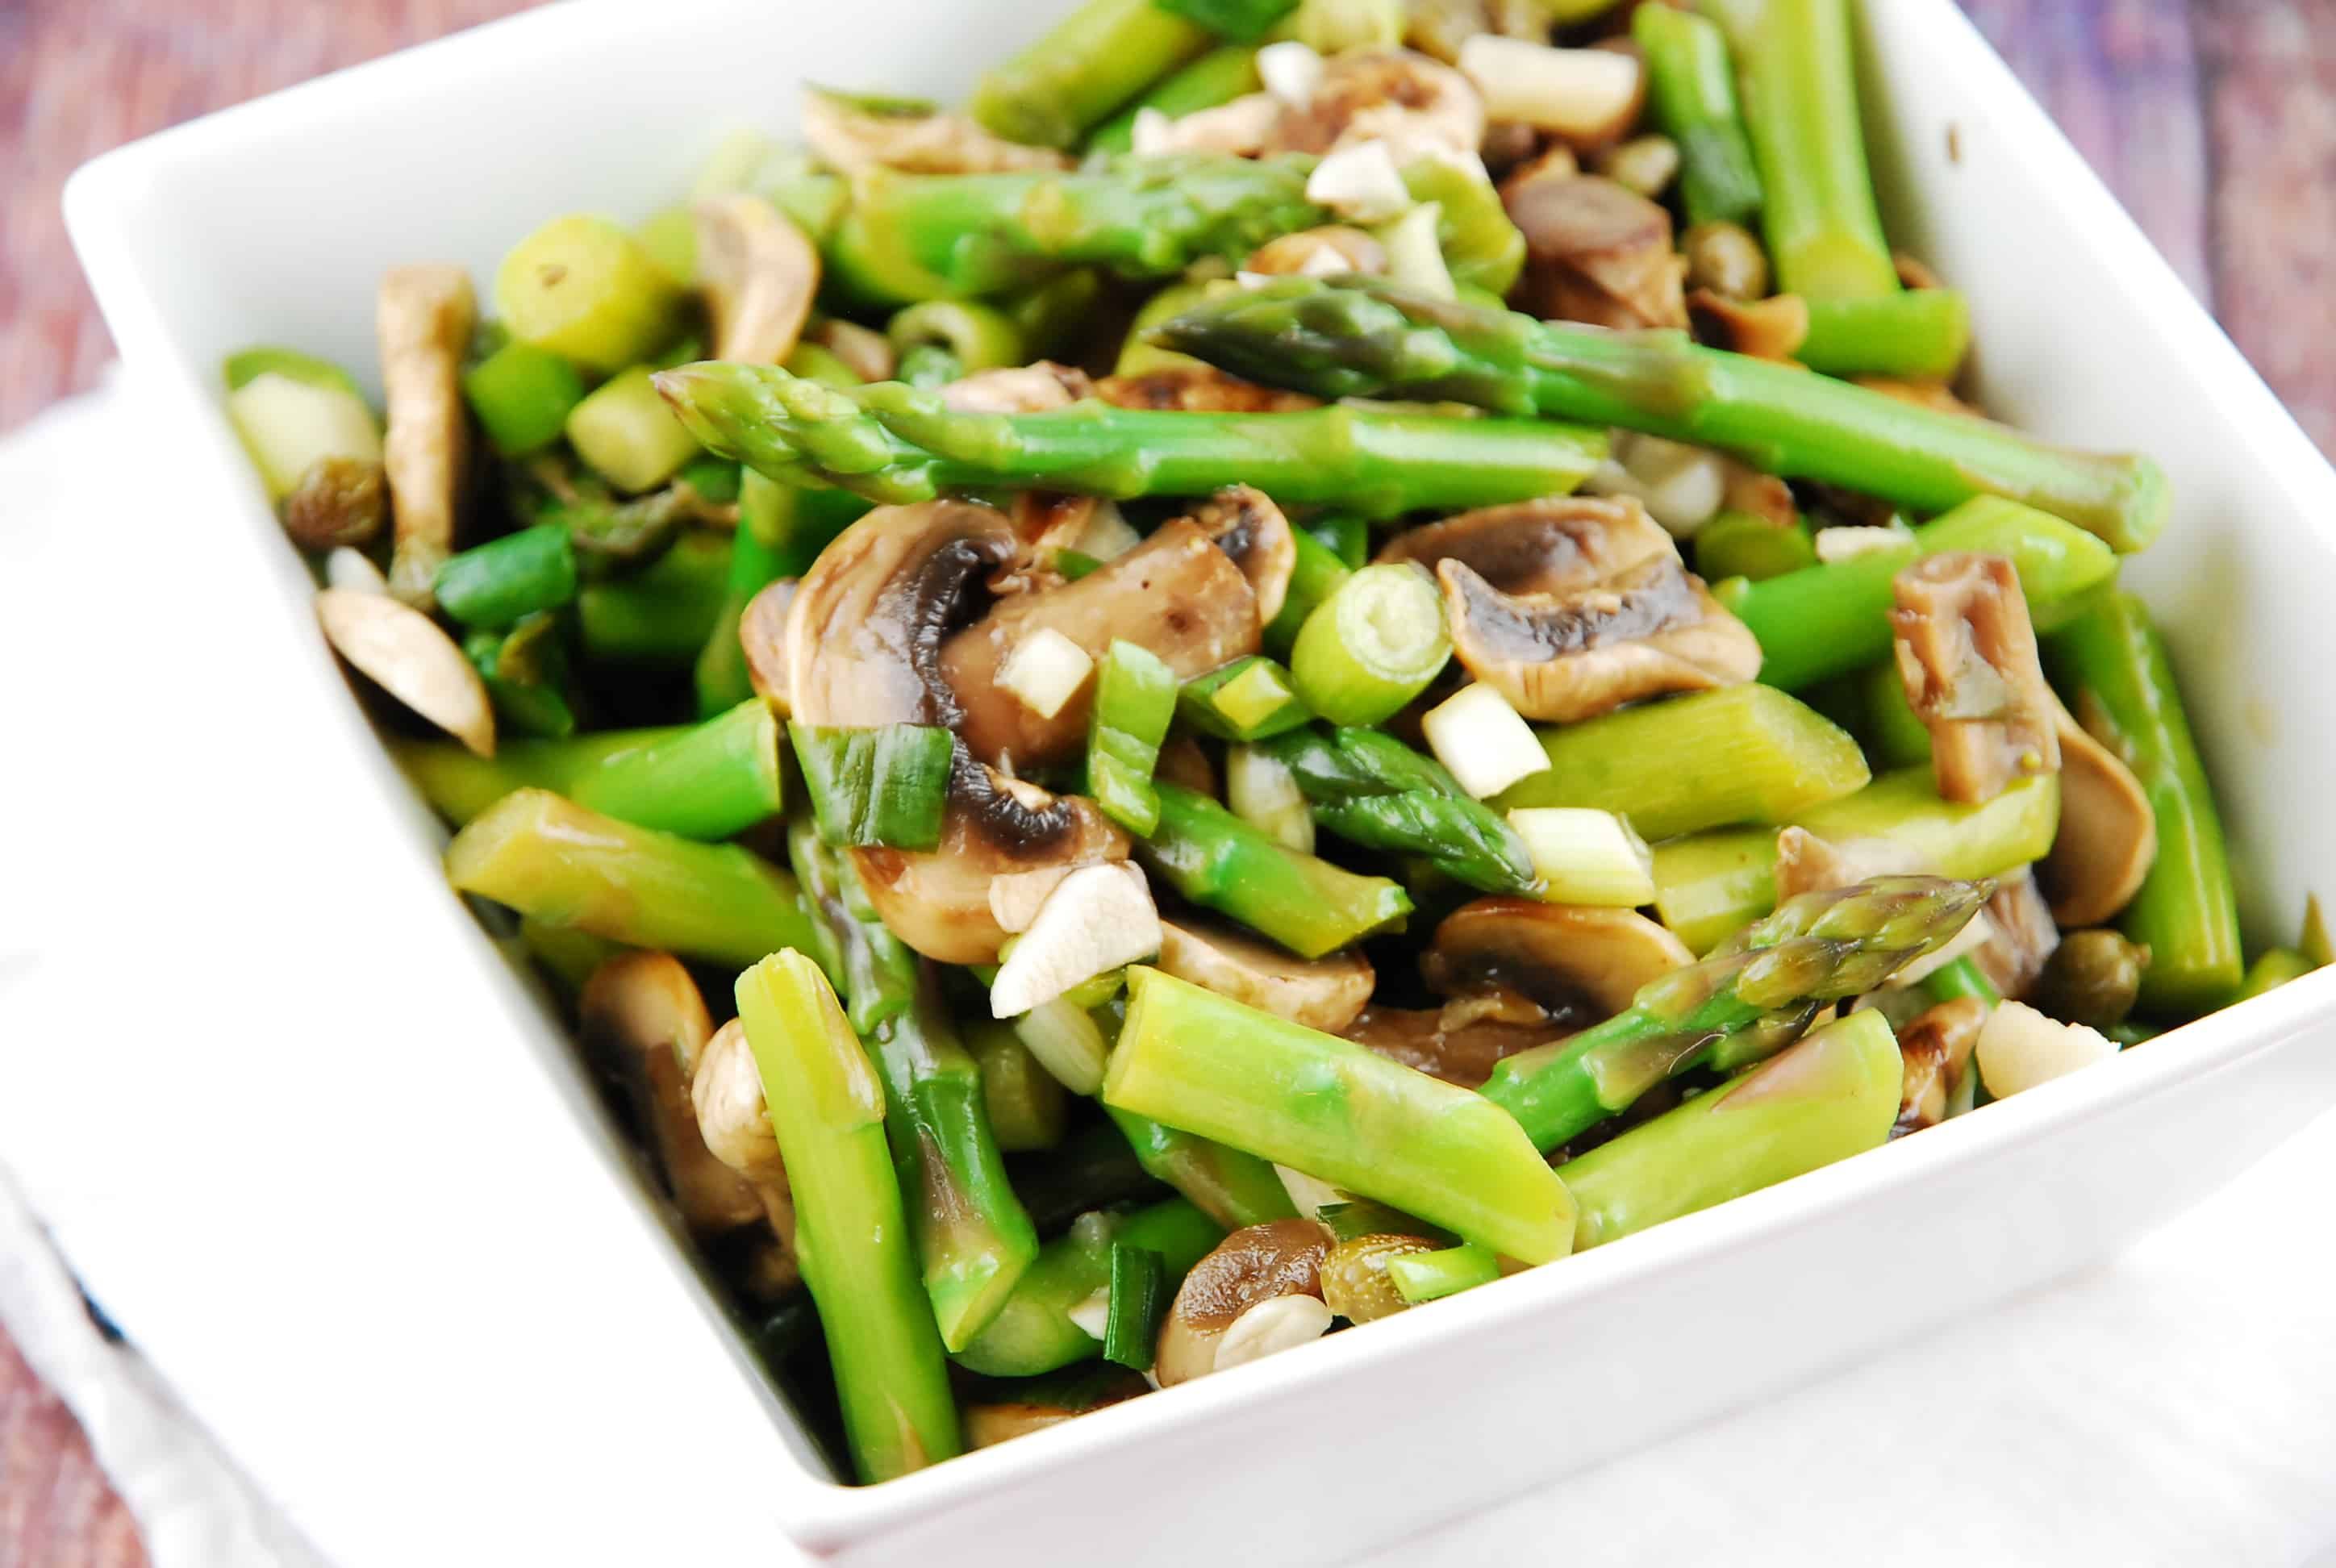 Warm Mushroom and Asparagus Salad Recipe - 2 Points + - LaaLoosh